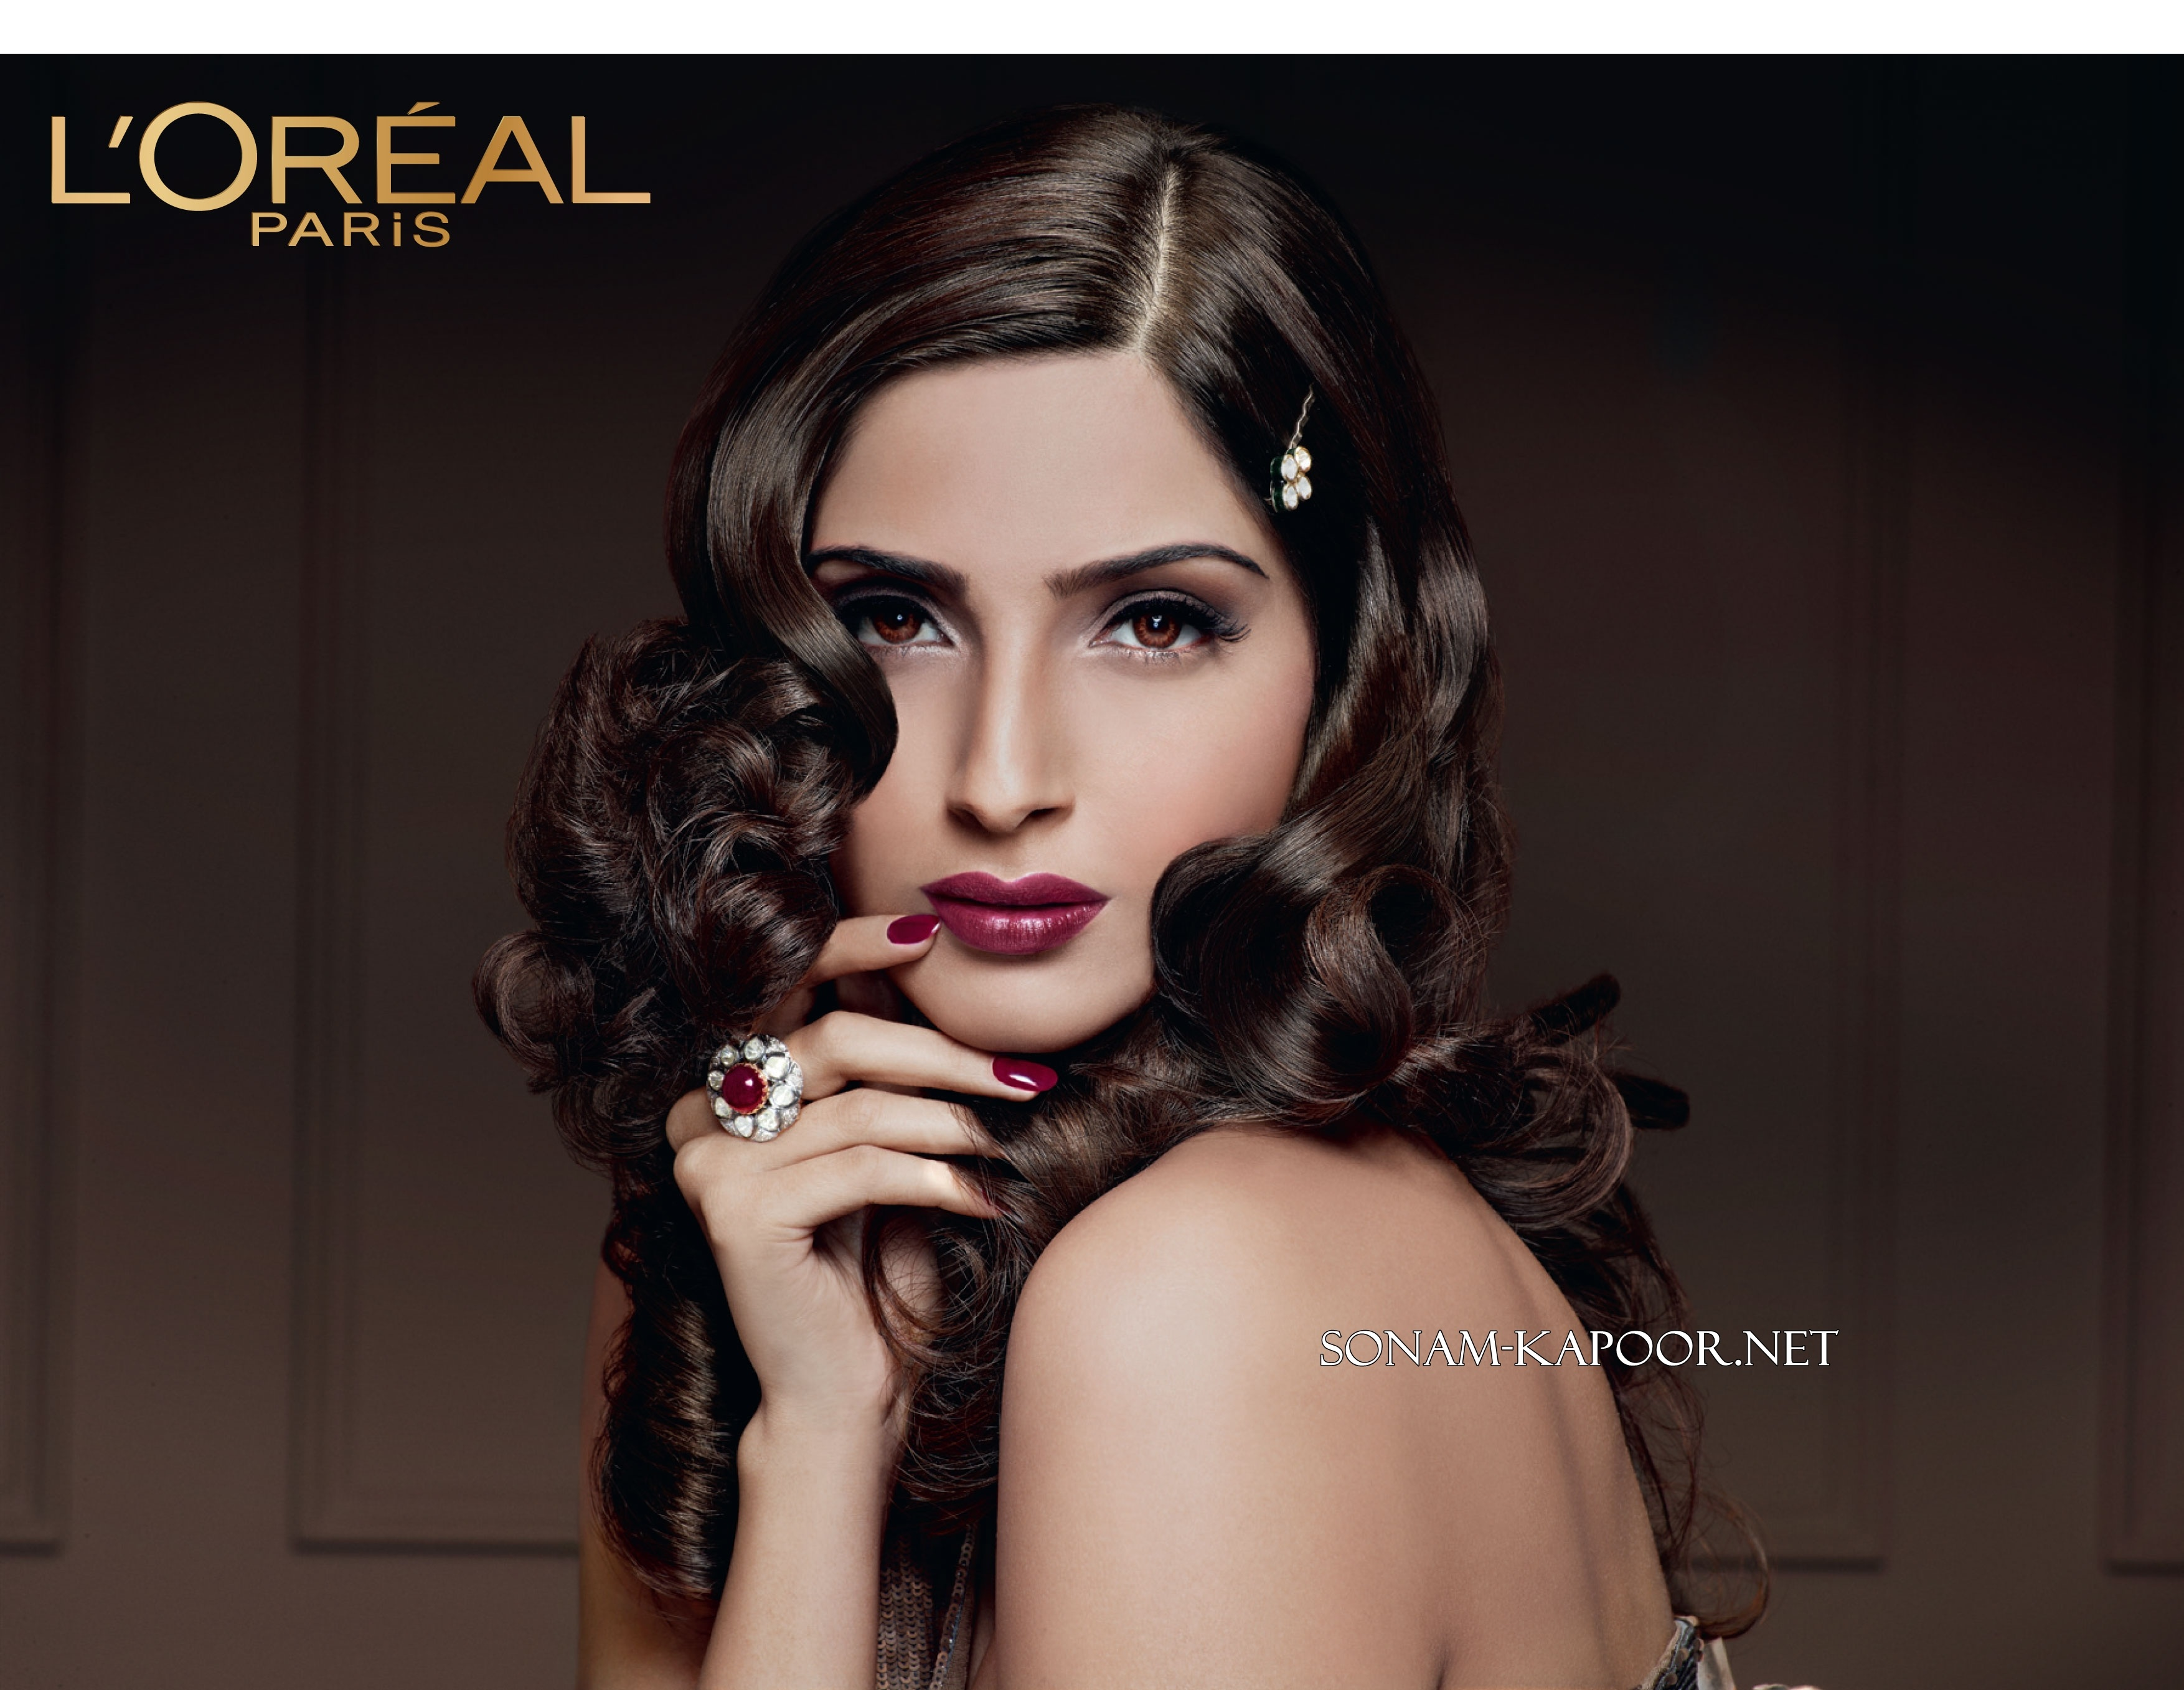 loreal background 4 reviews of loreal northcraft first noticed l'oreal when i saw that all the homes in our neighborhood sold within such a short amount of time at high prices so i gave her a call, and from the beginning she has always been very prompt and.